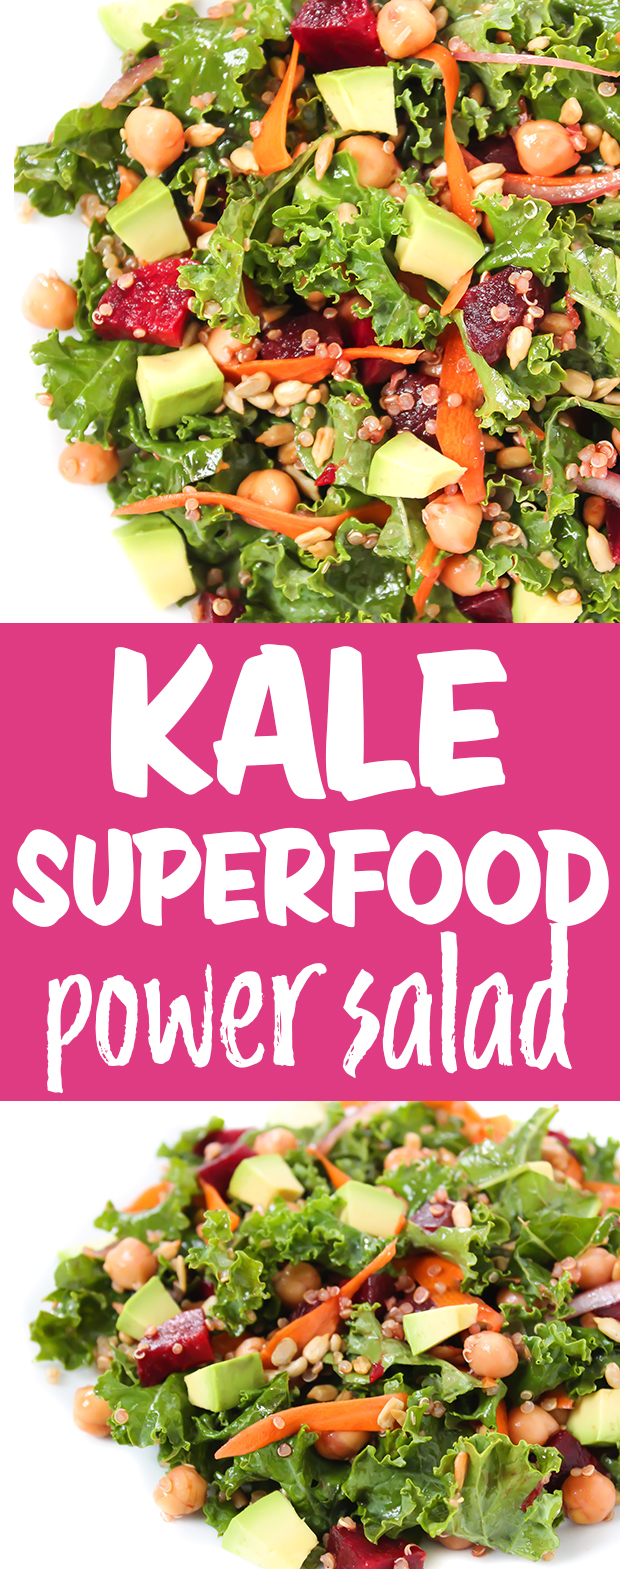 photo collage of kale superfood salad